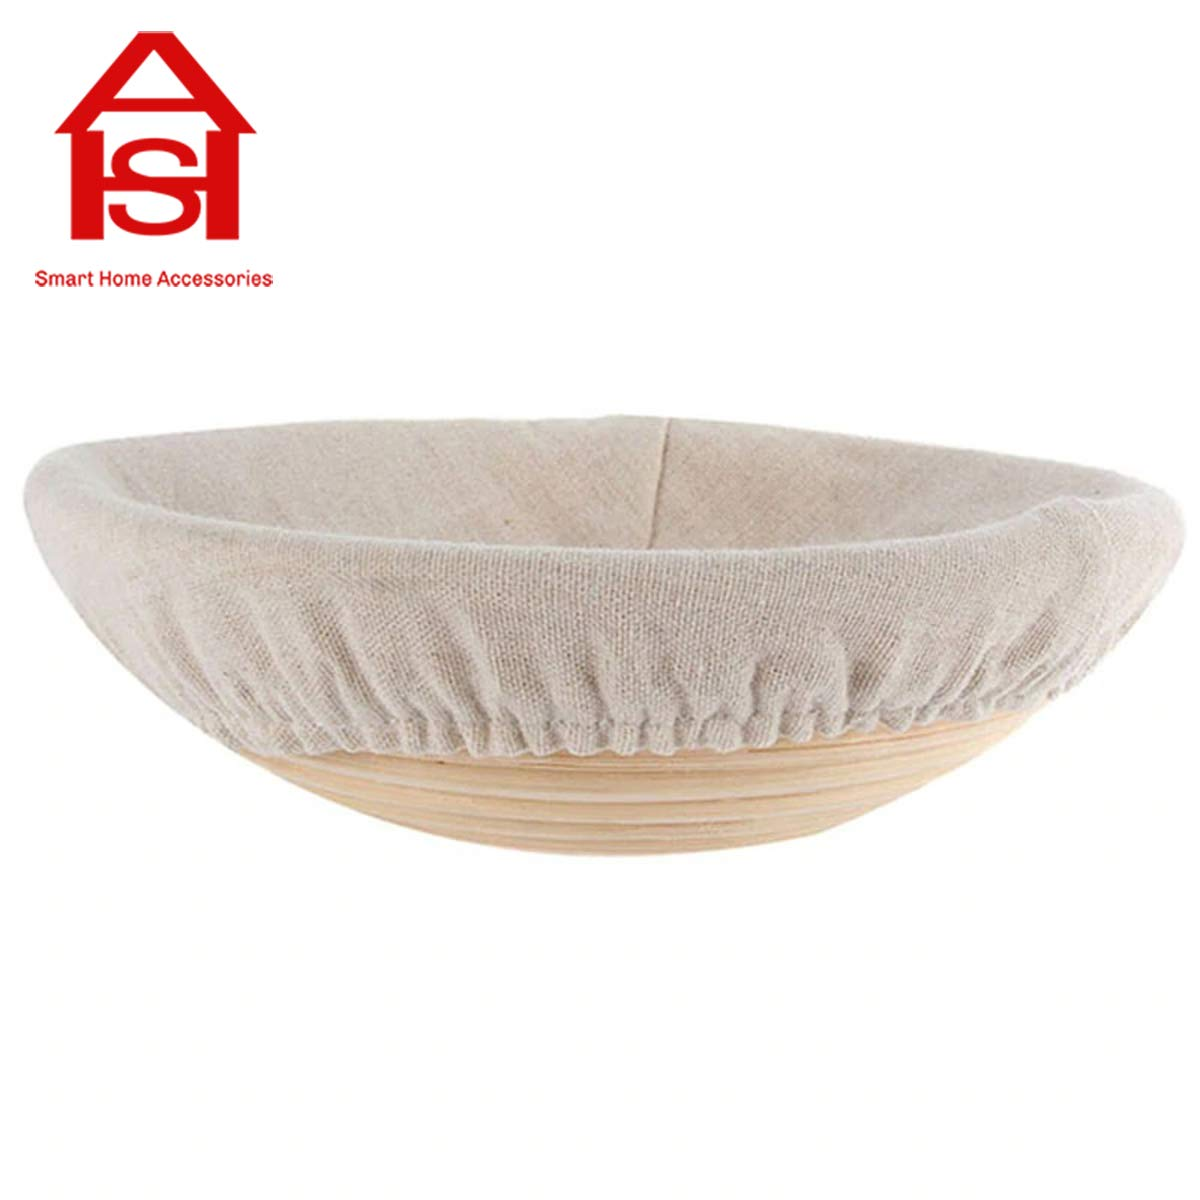 Banneton Proofing Basket - Rattan Basket Bread Banneton Brotform Dough Proofing Proving Rattan Multi-Sizes For Rising Dough Or Decoration Home Basket - by SHA - 1 PCs by SHA (Image #1)